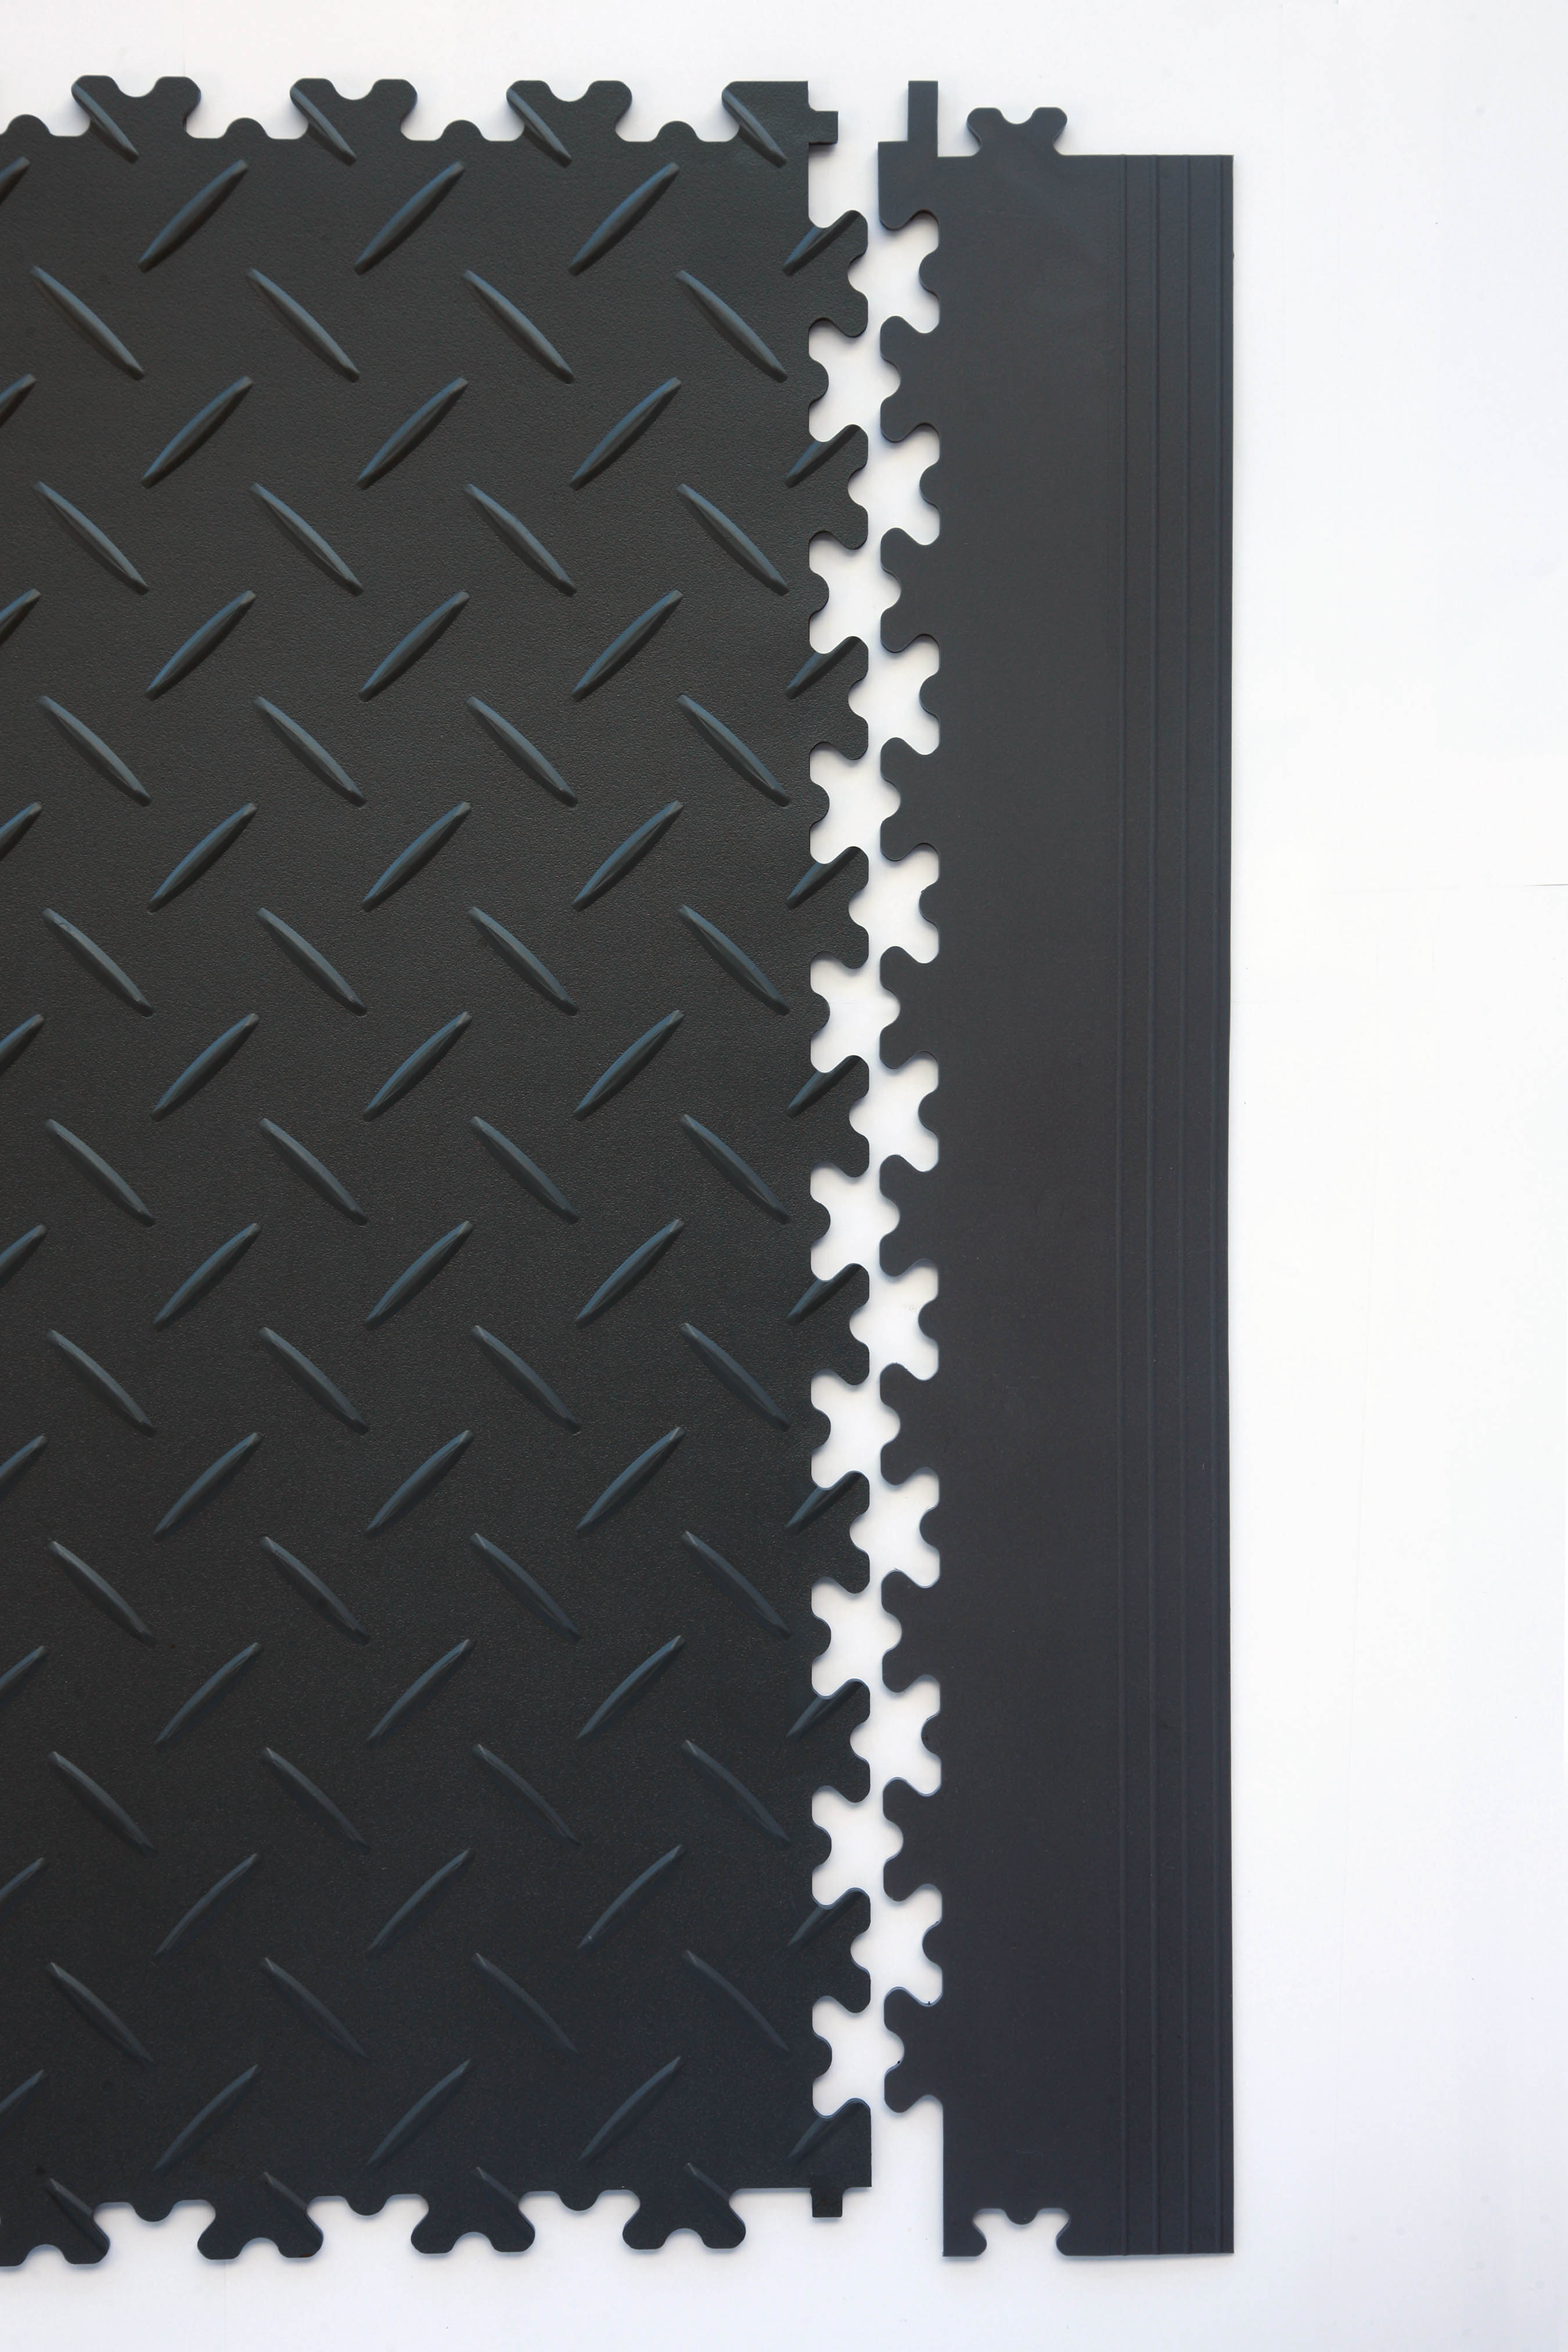 Flexi-Tile Standard Diamond Plate Recycled Black